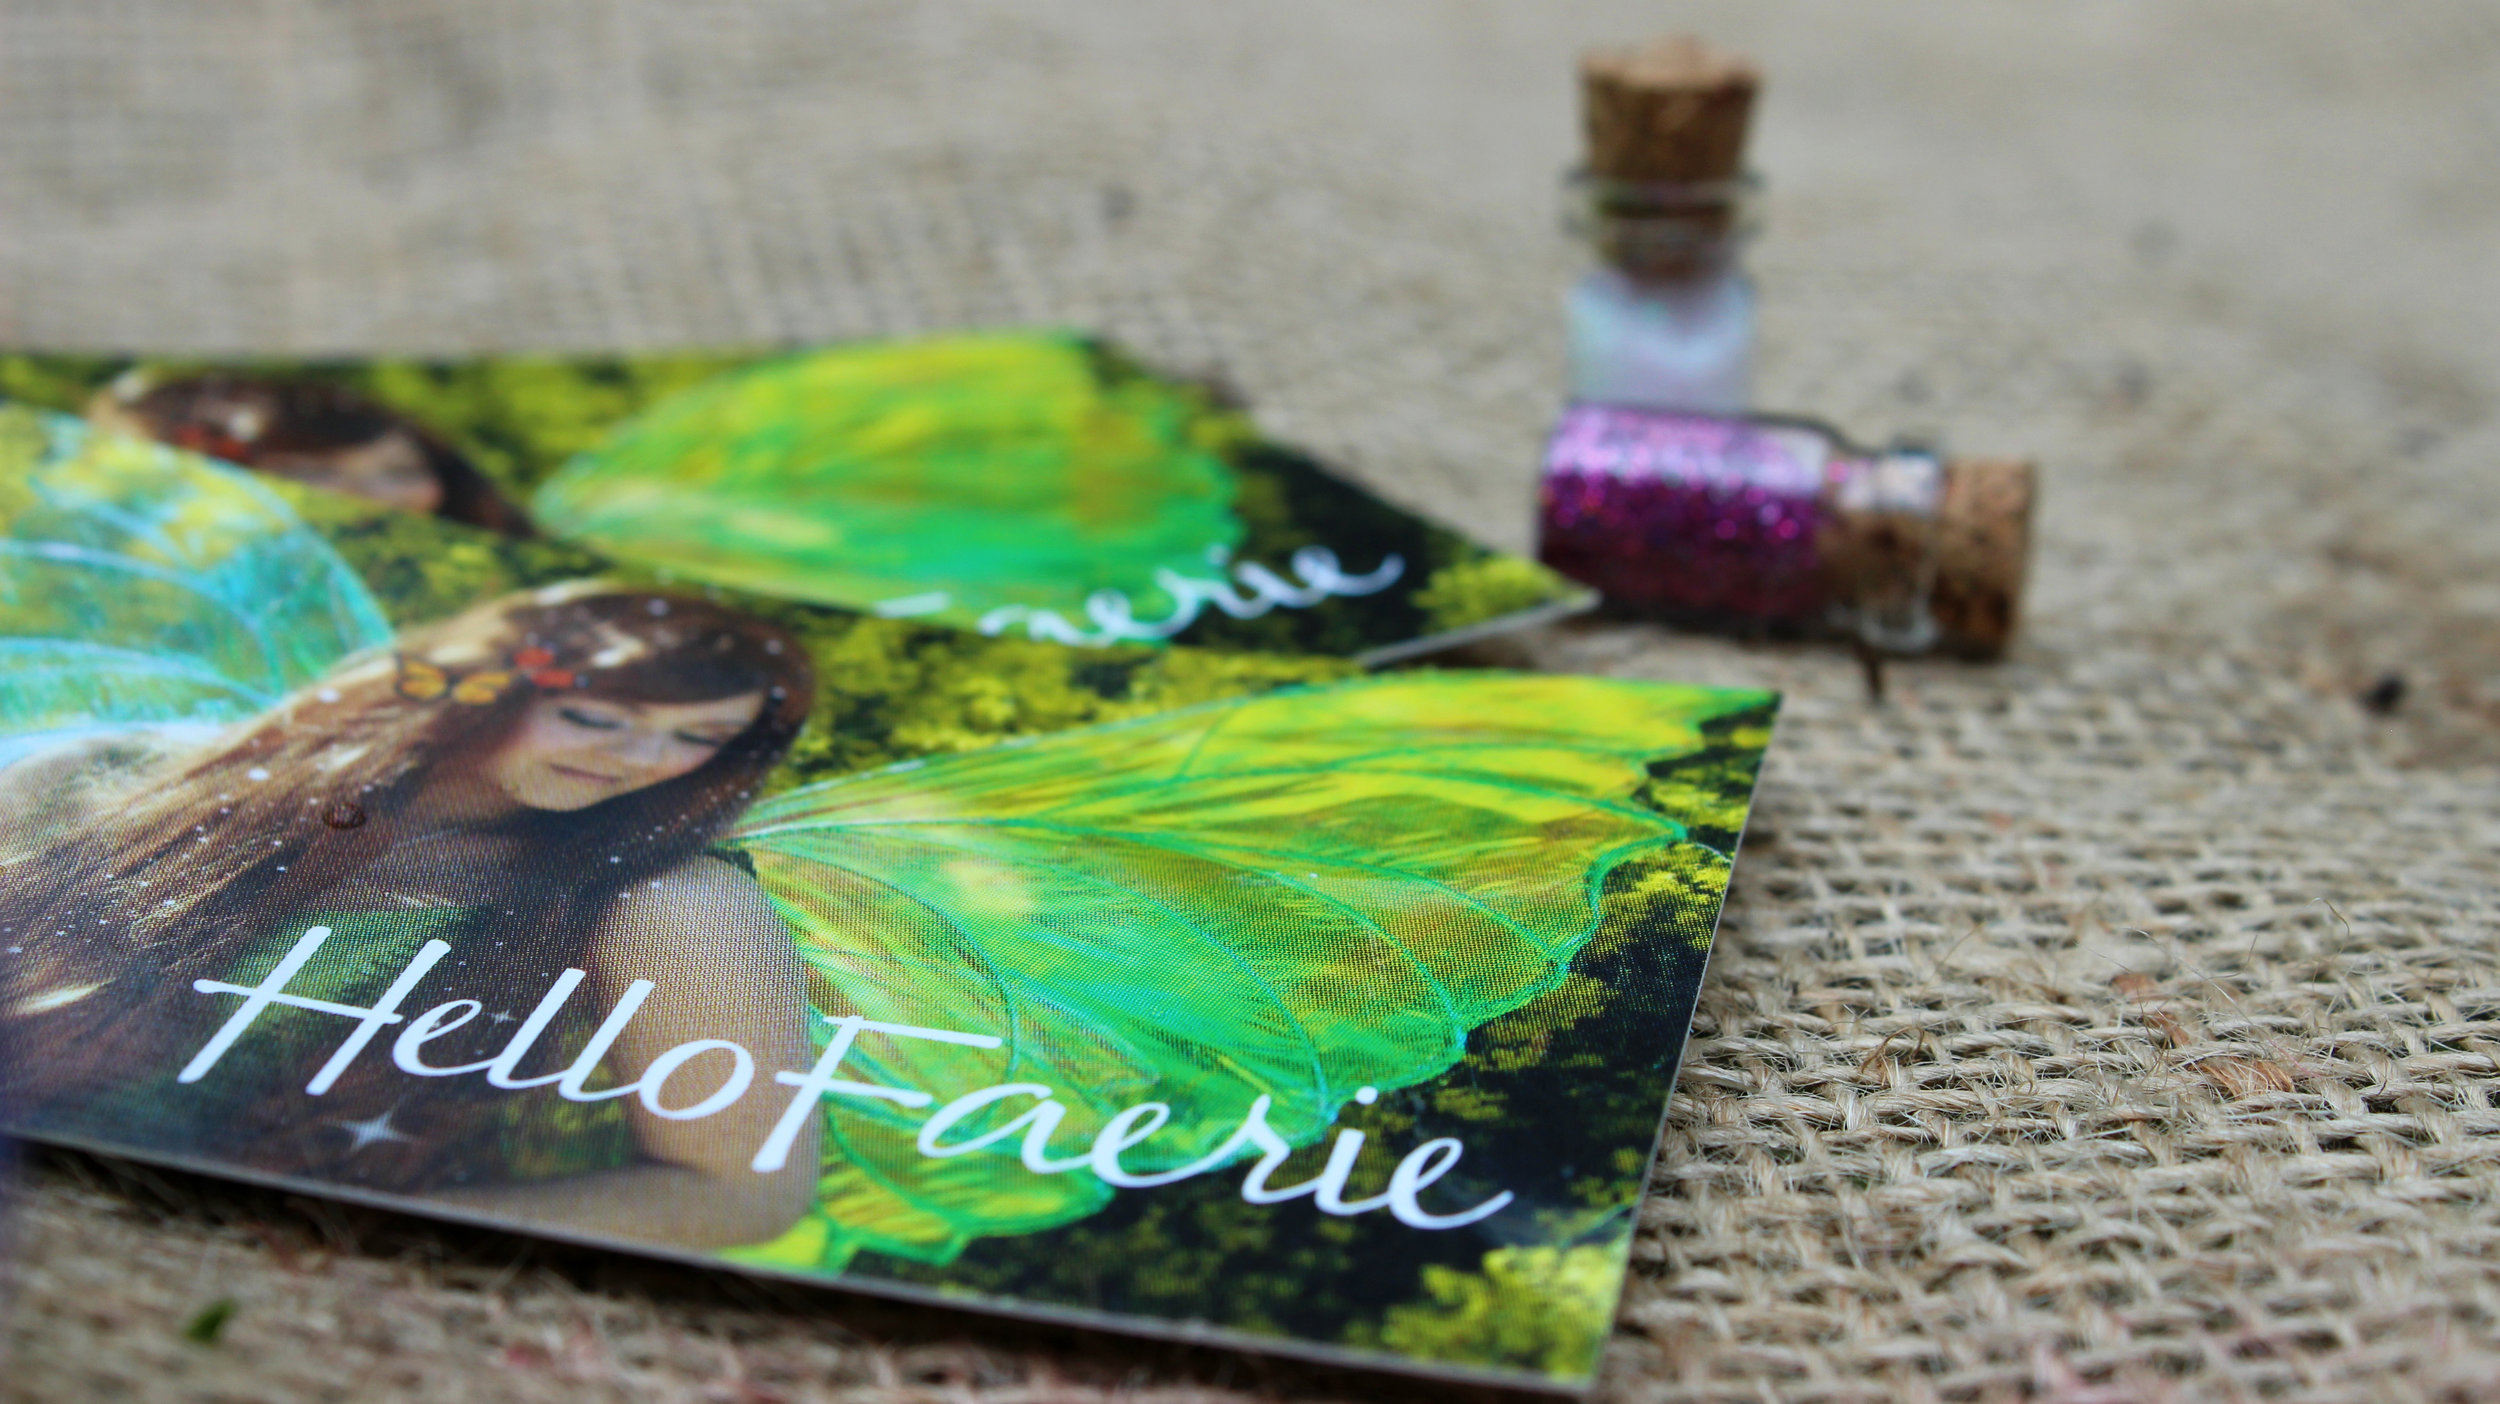 hello-faerie-bussines-card-edit-themagiccrafter.jpg